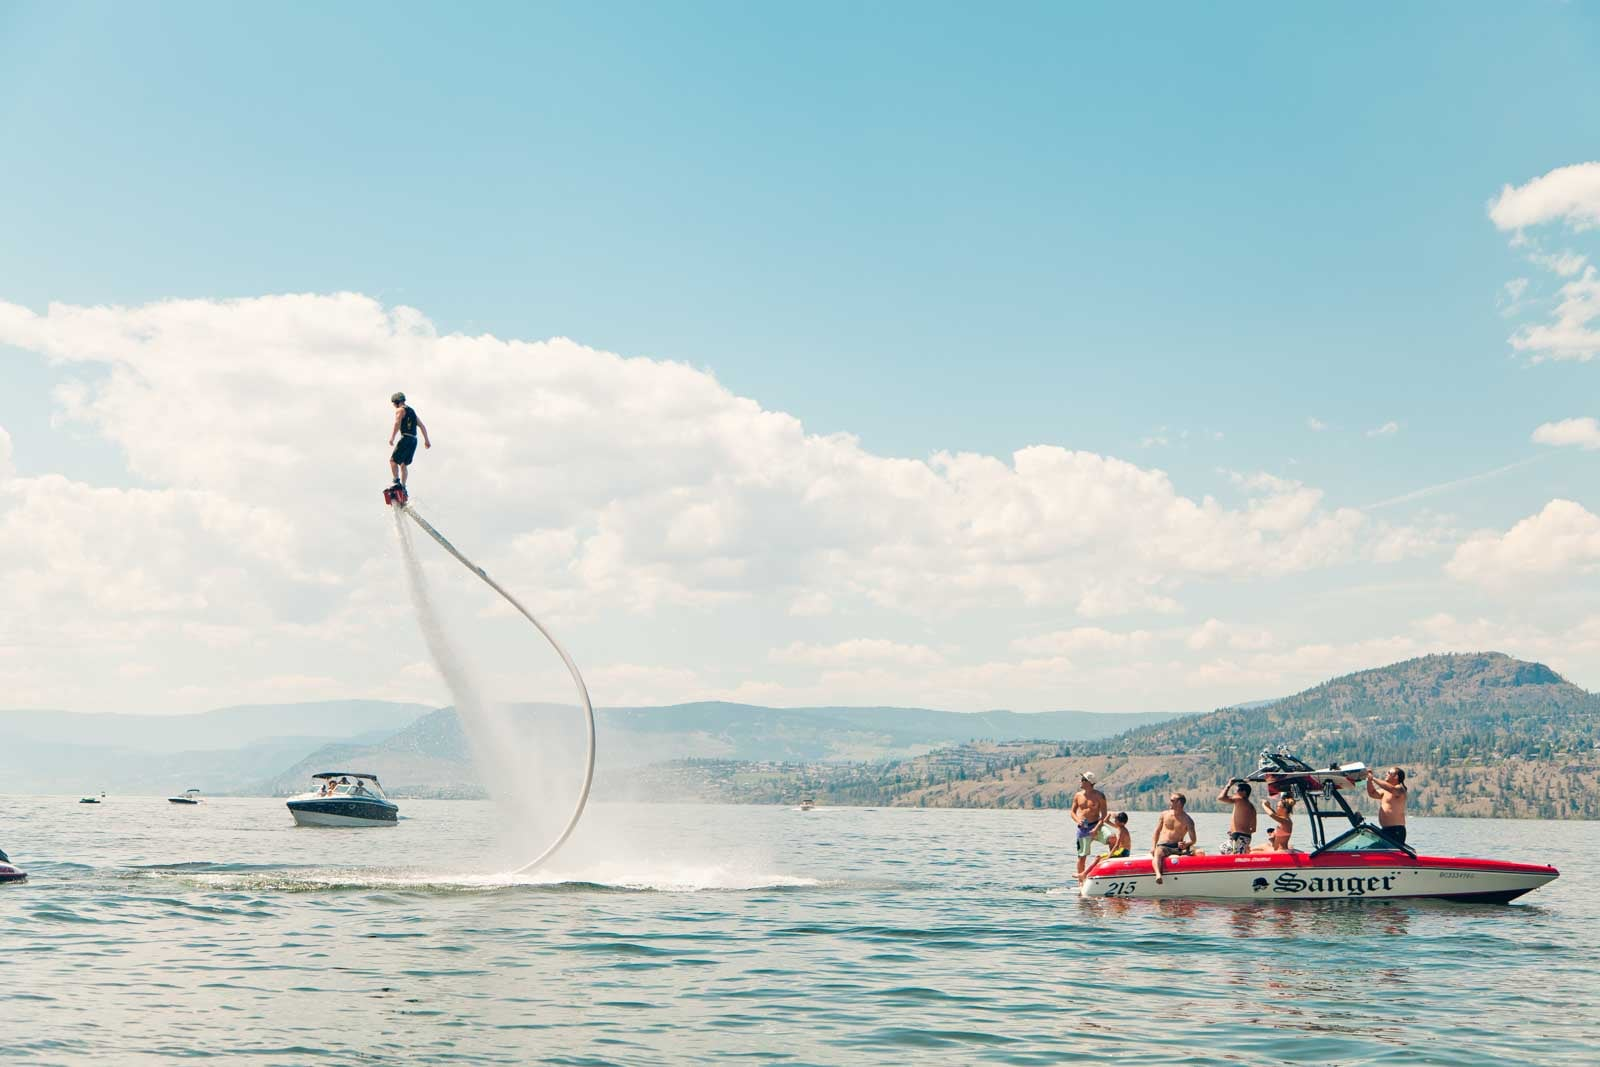 showing of some flyboarding above a boat in Kelowna BC Canada